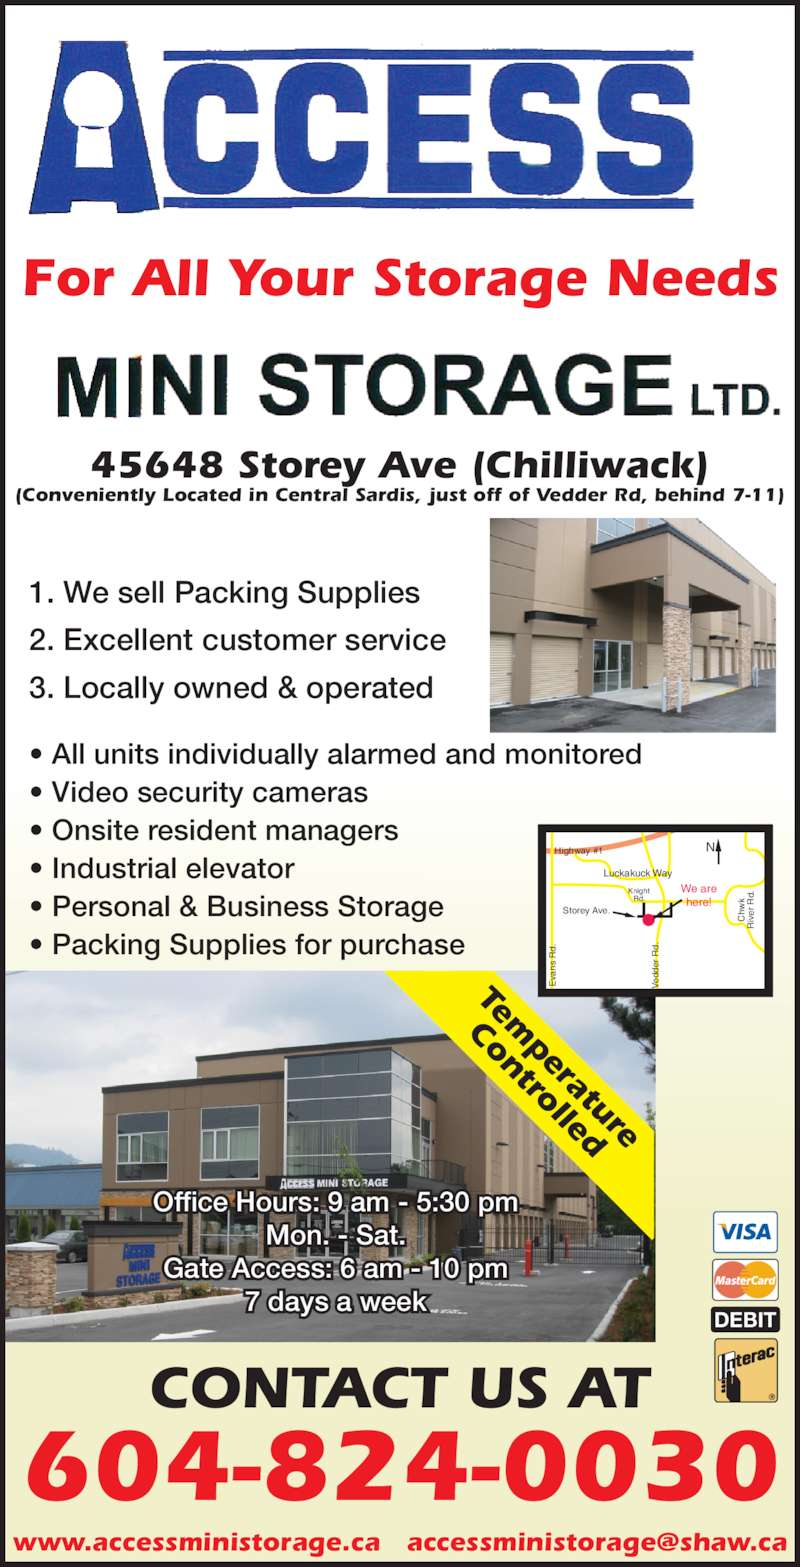 Access Mini-Storage Ltd (604-824-0030) - Display Ad - Tem DEBIT perature Controlled 604-824-0030 CONTACT US AT 1. We sell Packing Supplies 2. Excellent customer service 3. Locally owned & operated ? All units individually alarmed and monitored ? Video security cameras ? Onsite resident managers ? Industrial elevator ? Personal & Business Storage ? Packing Supplies for purchase 45648 Storey Ave (Chilliwack) (Conveniently Located in Central Sardis, just off of Vedder Rd, behind 7-11) Office Hours: 9 am - 5:30 pm Mon. - Sat. Gate Access: 6 am - 10 pm 7 days a week Knight Rd. We are here! Luckakuck Way Highway #1 Storey Ave. Ev s  d. Ve dd er  R d. Ch wk ive r  d. For All Your Storage Needs